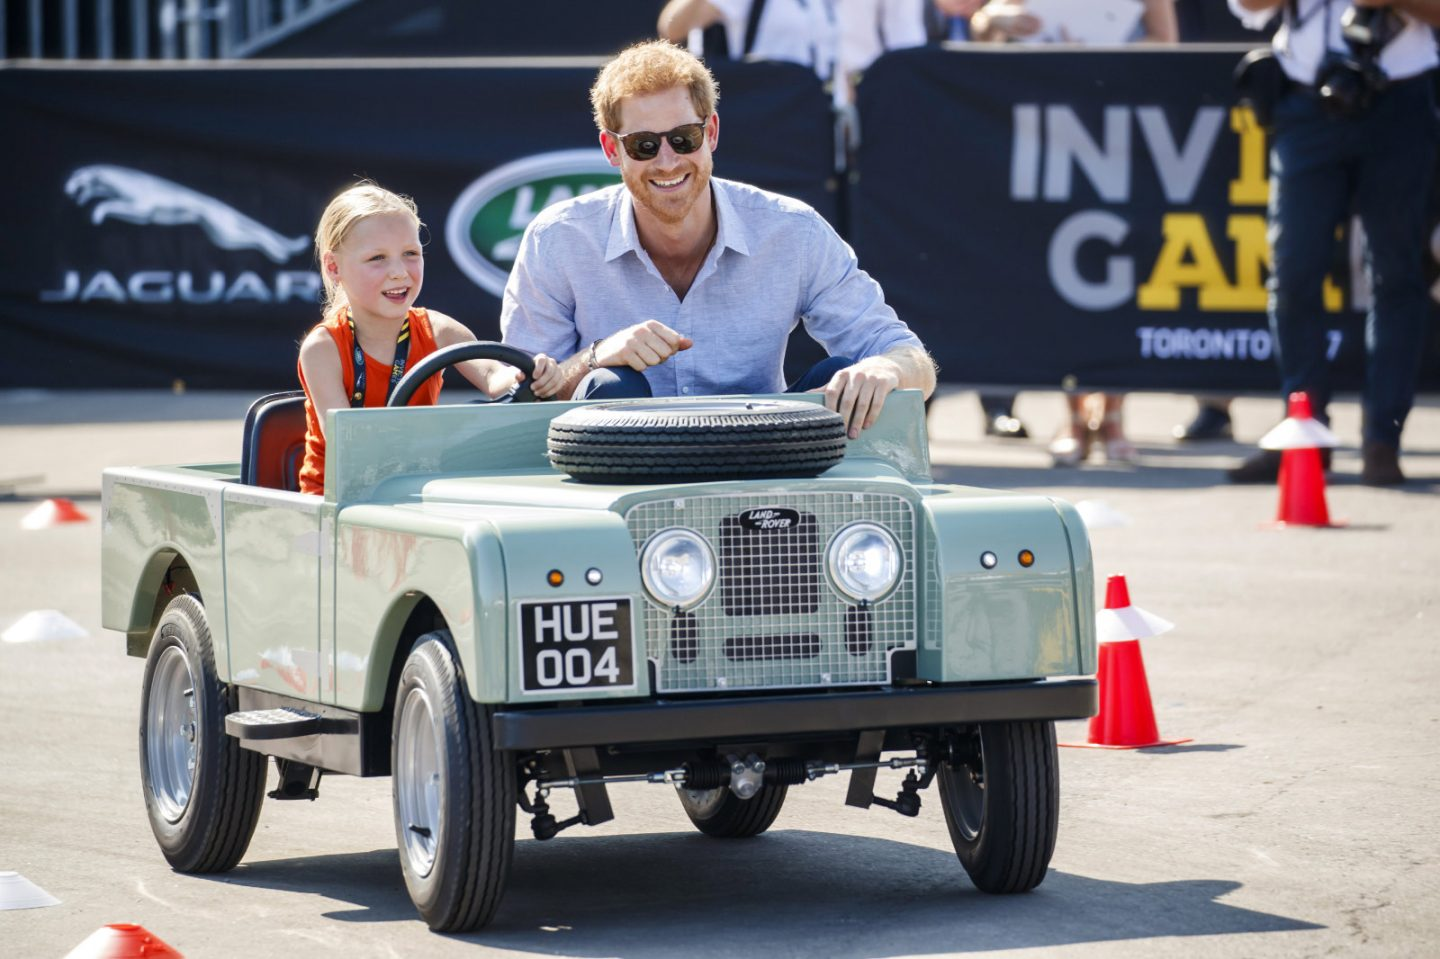 Prince Harry kicks off Invictus Games in Toronto, awarding first medals in Jaguar Land Rover challenge